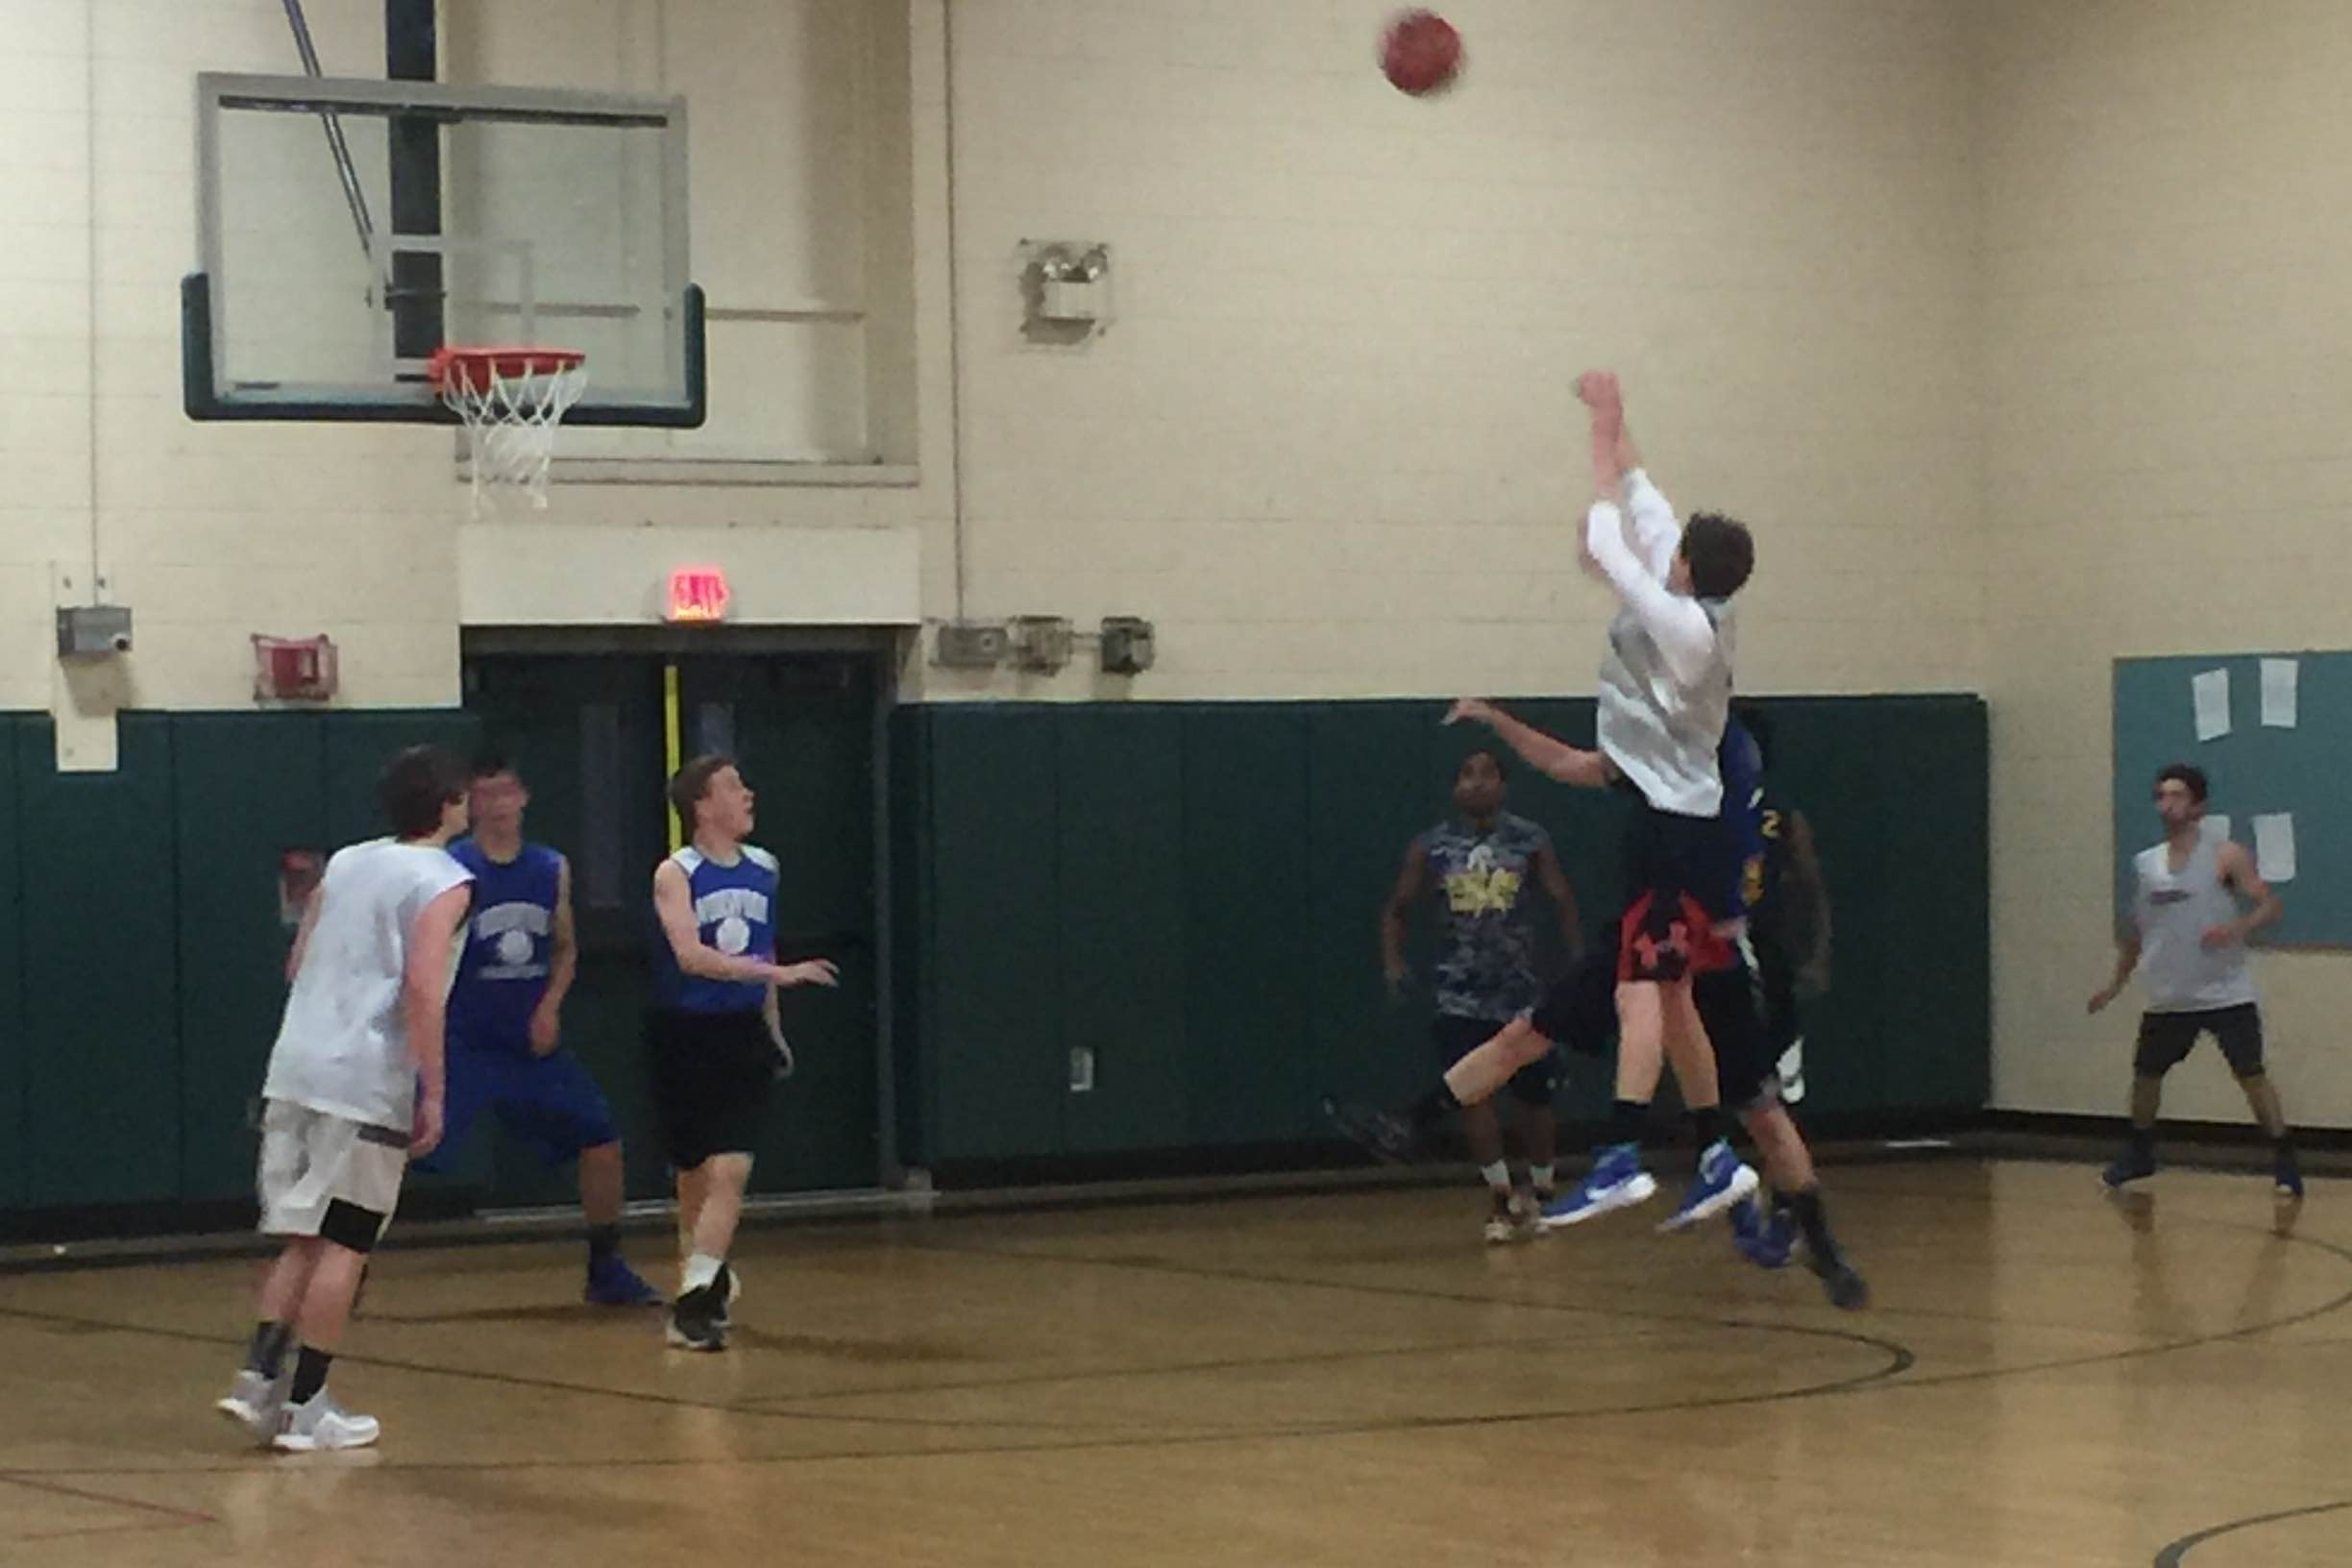 Needham's  Matt McKay  ( NESB-17U  player) takes a jumper from the top of the key vs Norwood.